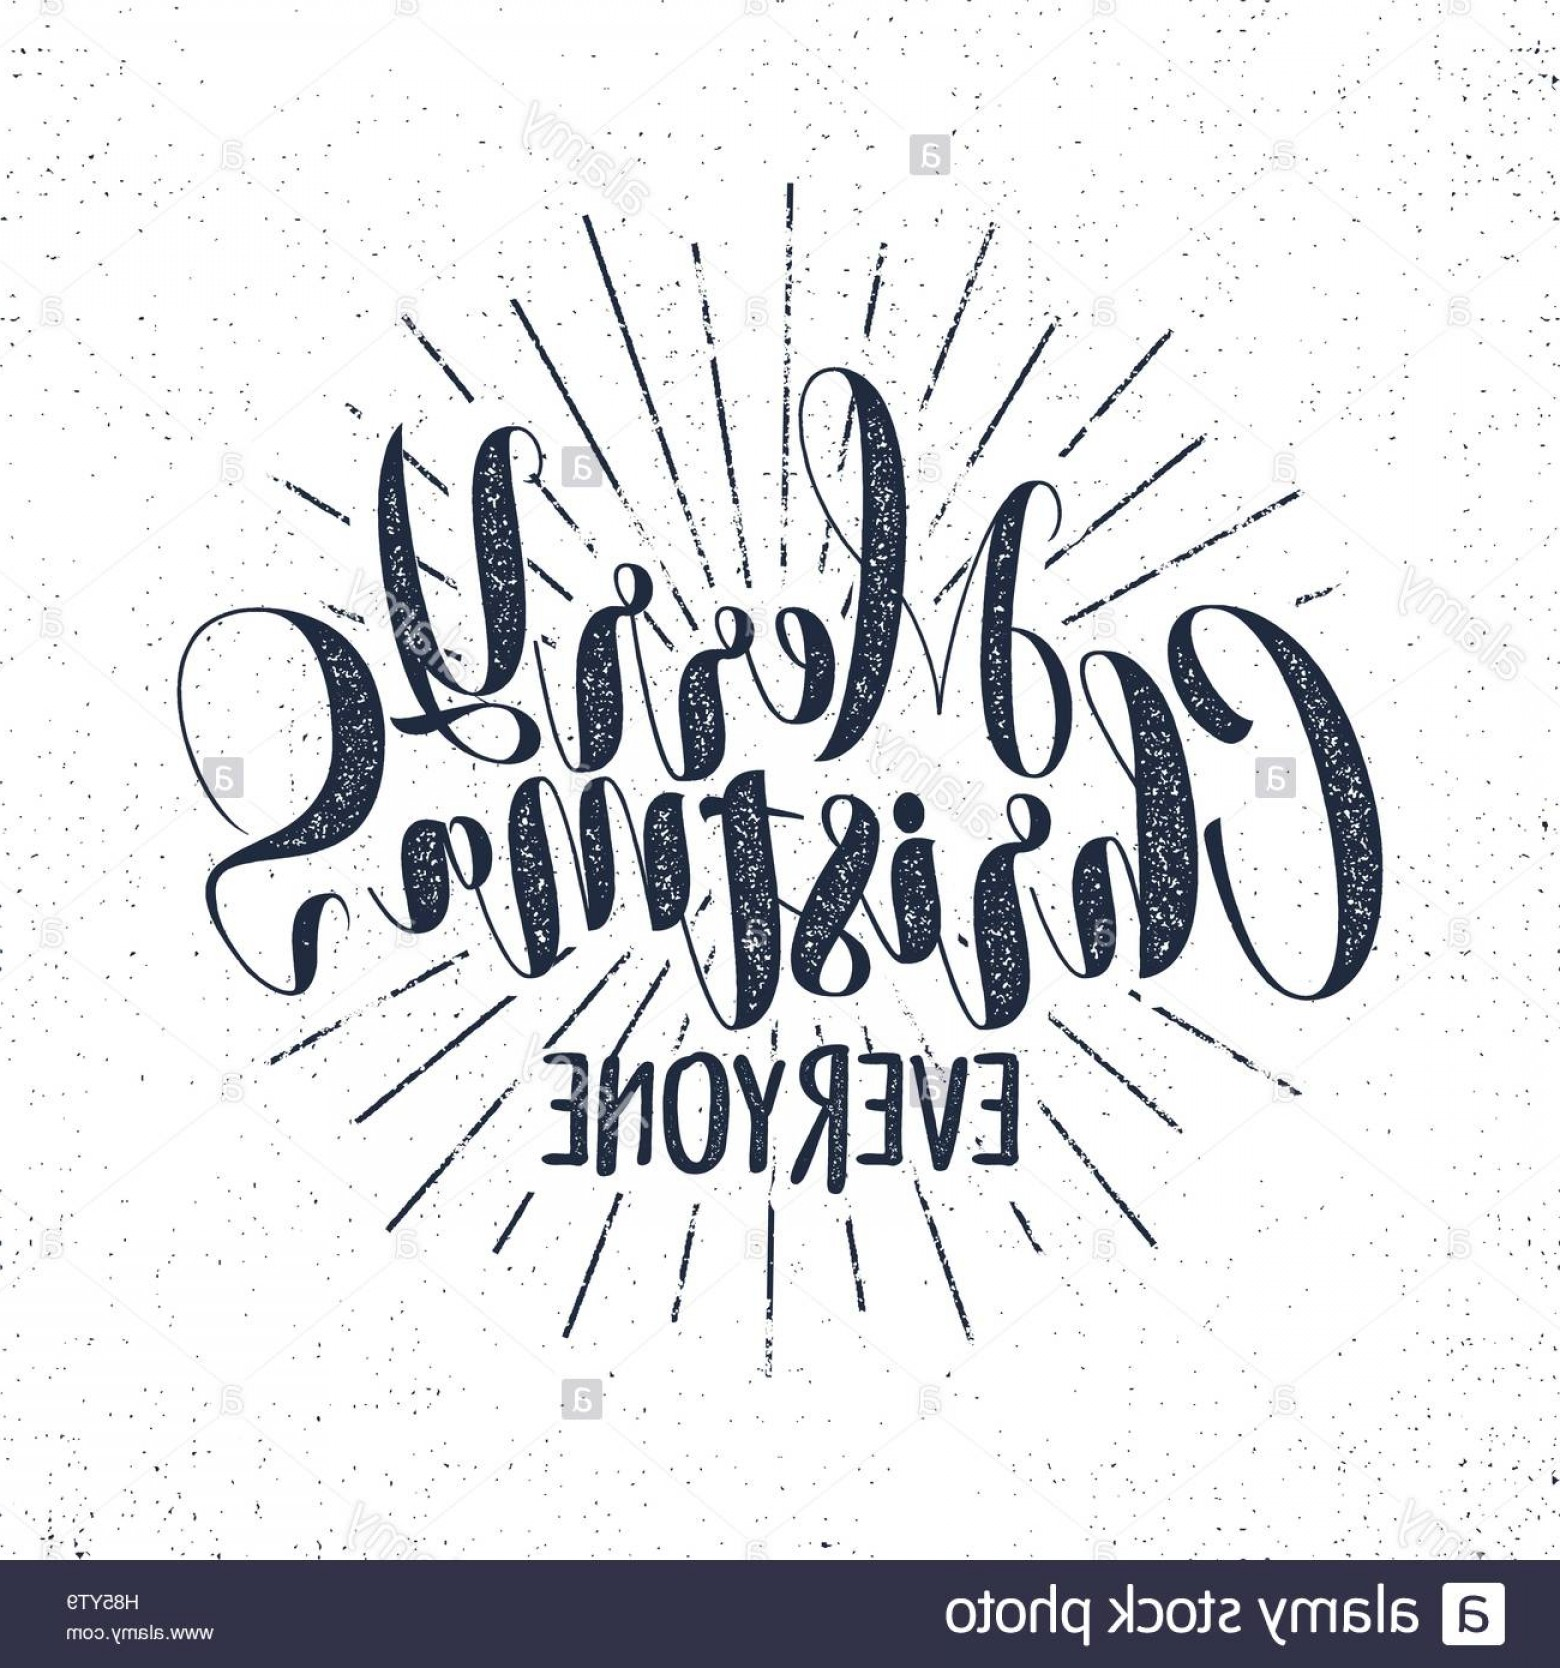 Christmas Vector Sayingd: Stock Photo Merry Christmas Everyone Lettering Holiday Wishe Sayings And Vintage